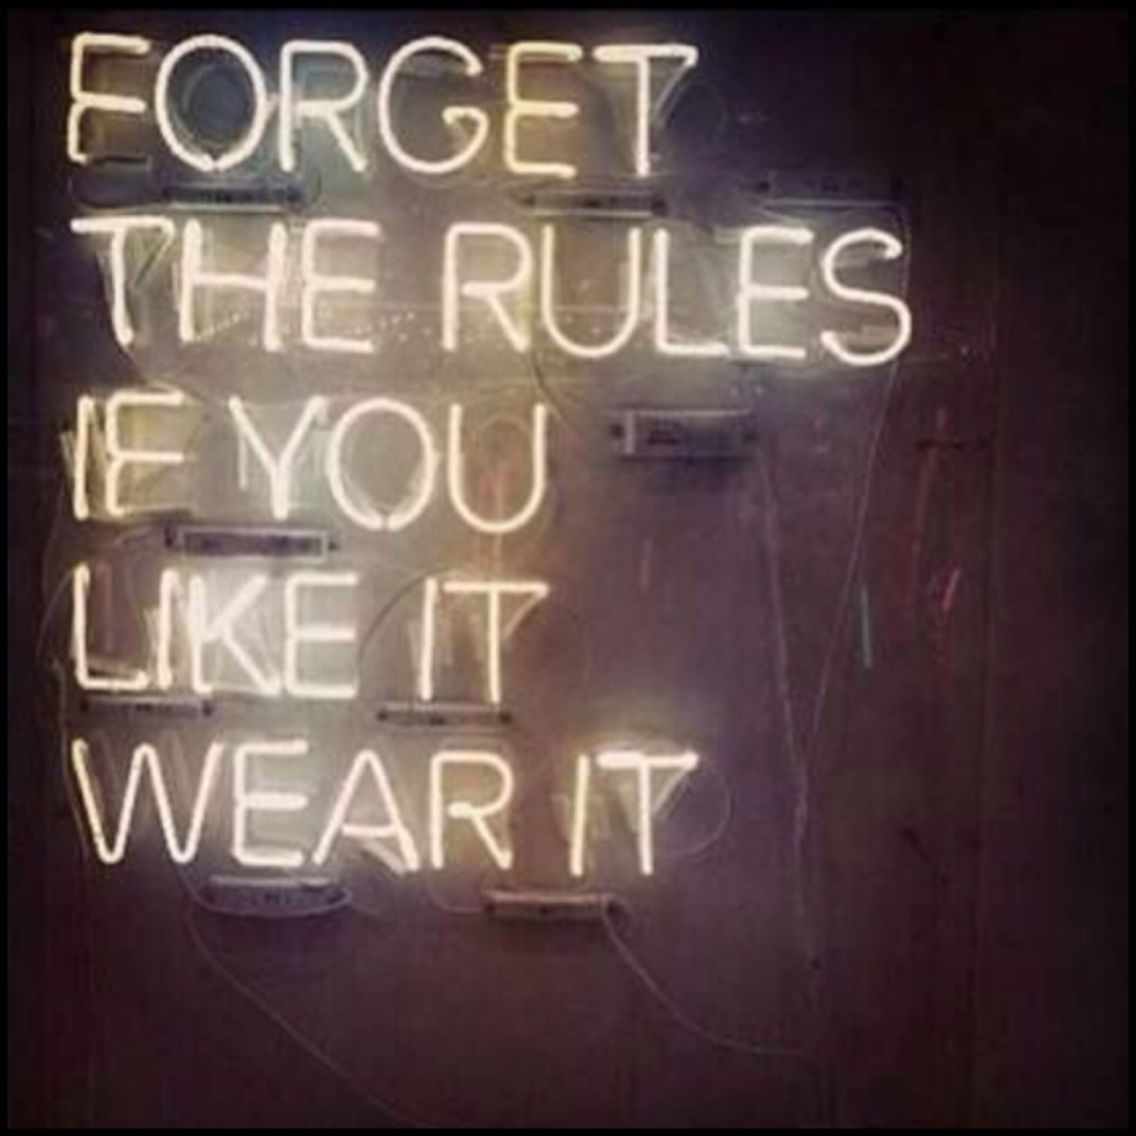 Put it on and look damn good while wearing it. Screw the rules!